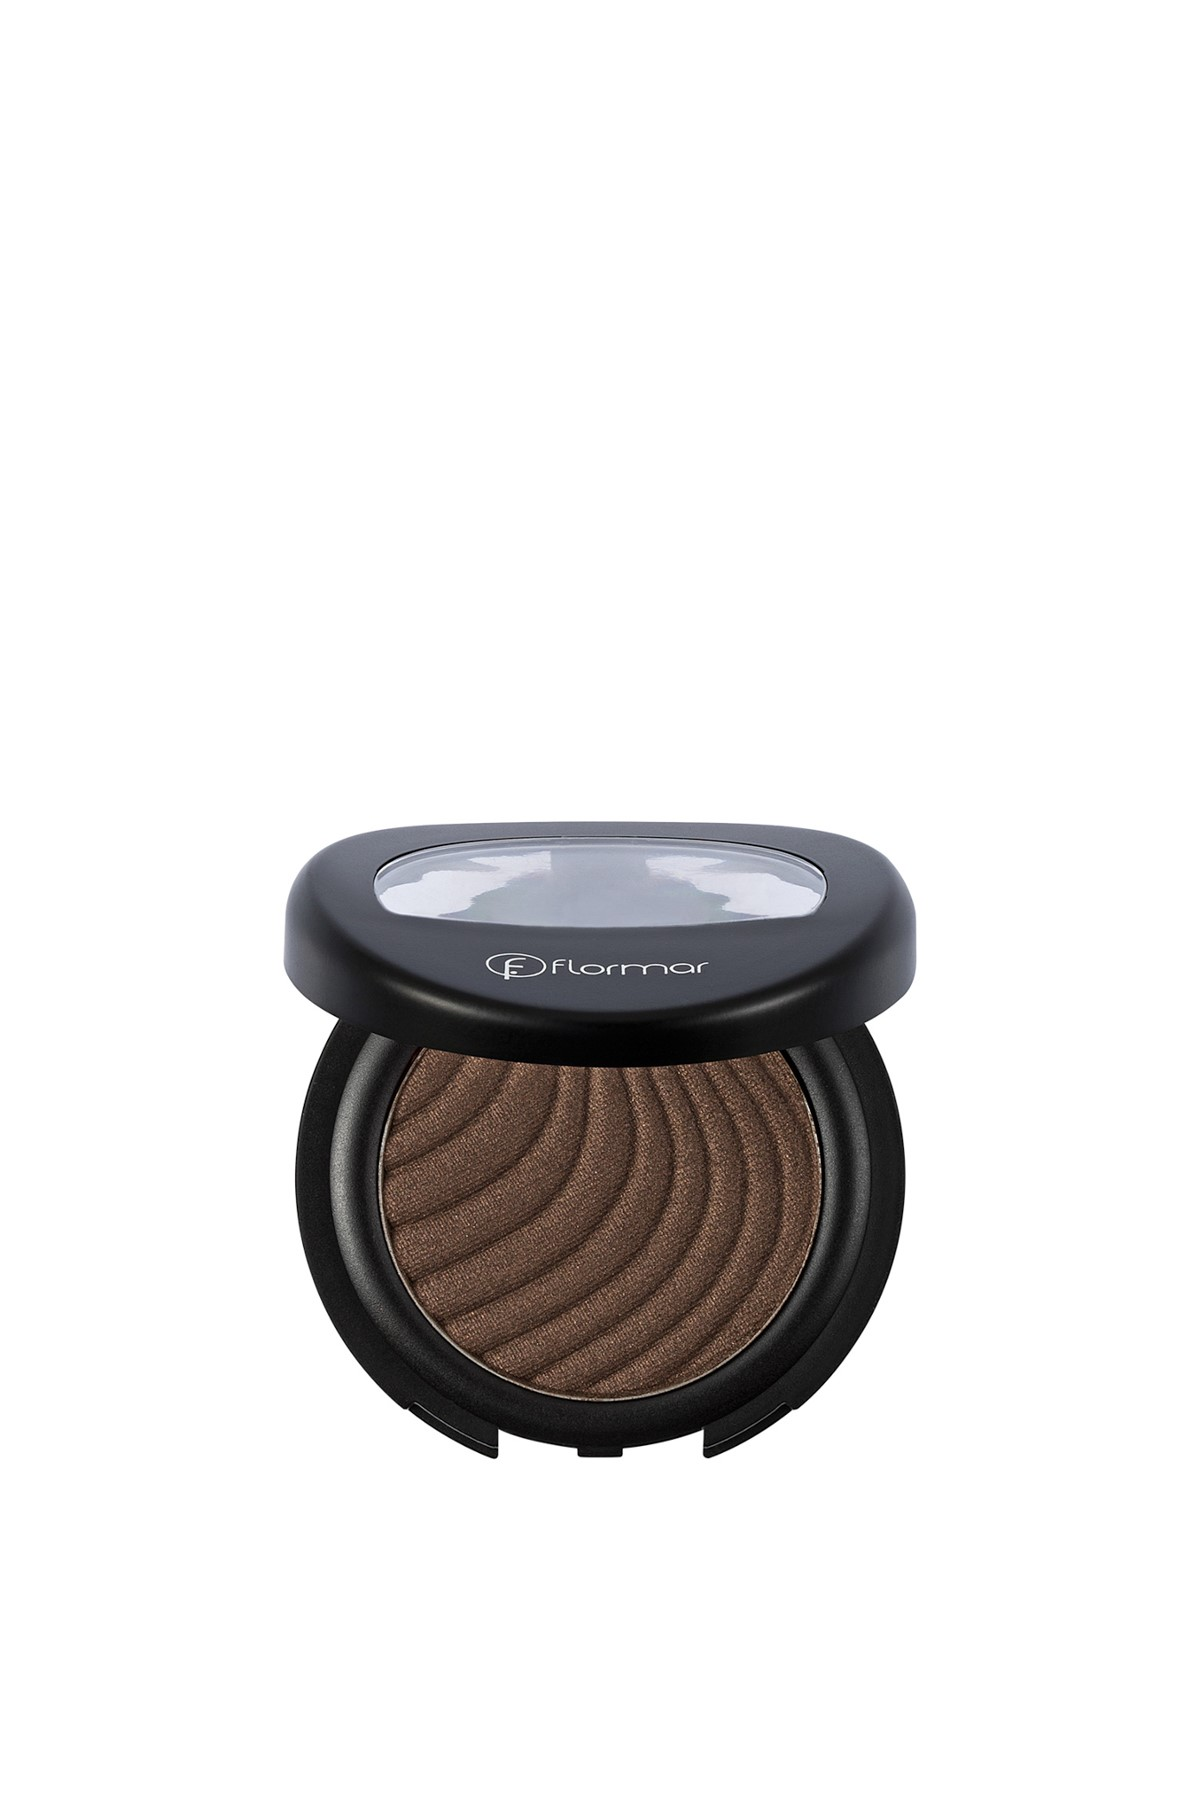 Flormar Göz Farı – Mono Eyeshadow Royal Brown 4 G 8690604038664 – 23.54 TL